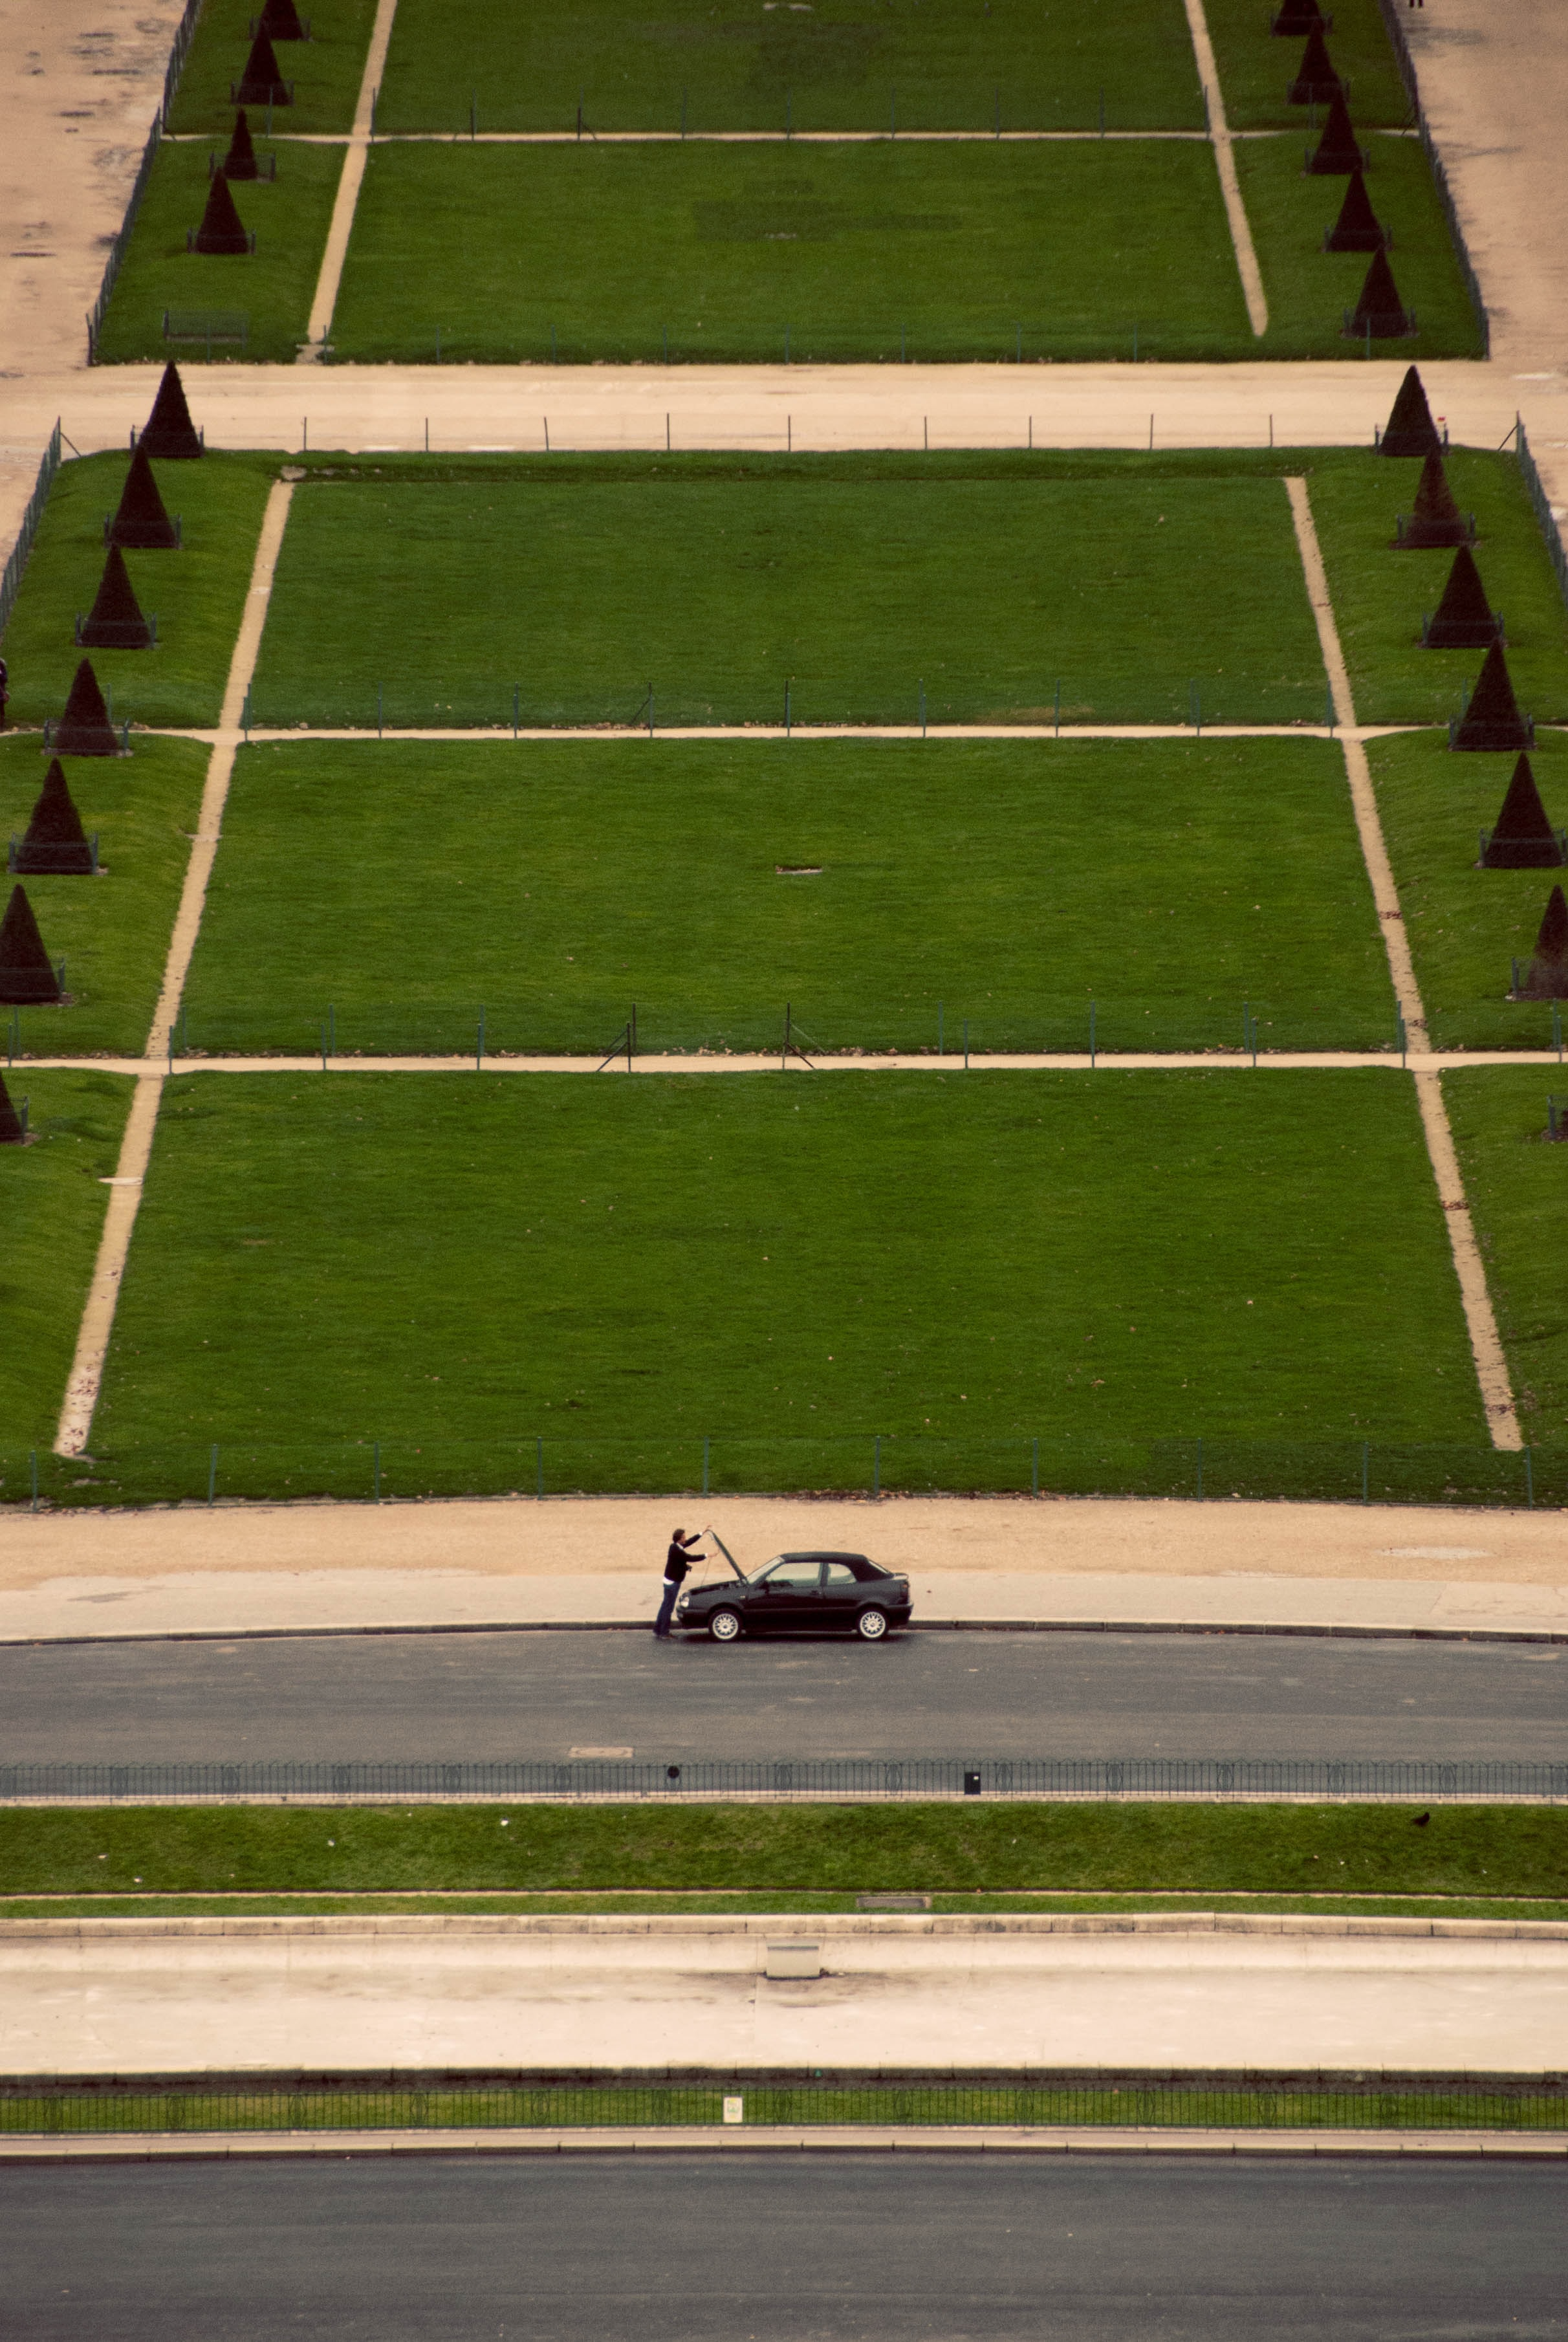 Man inspecting car parked in front of grassy fields